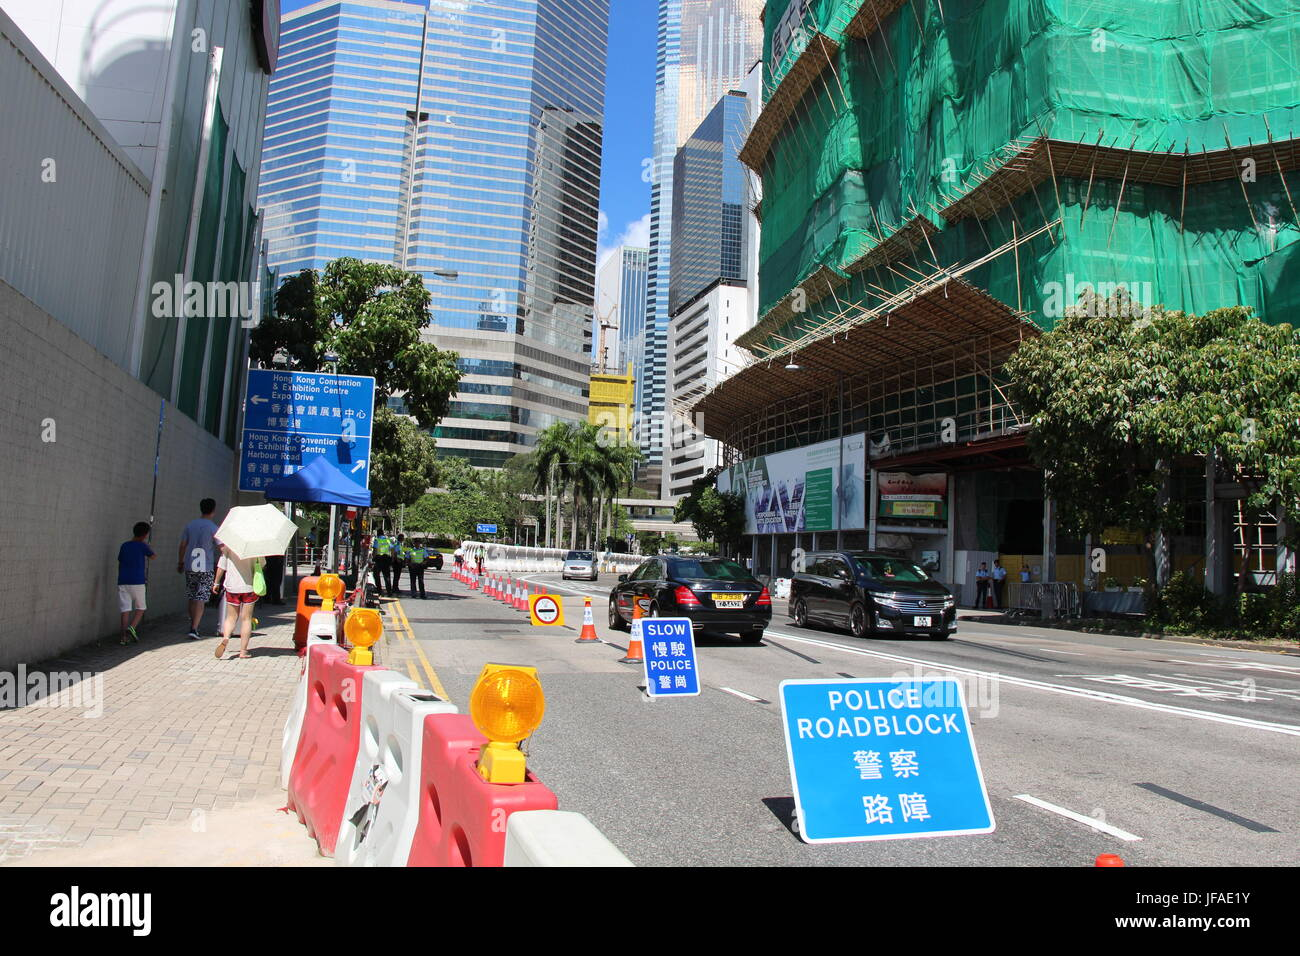 On the first day of Xi Jinping's visit to Hong Kong, pedestrians on the left were swiftly told by police not - Stock Image